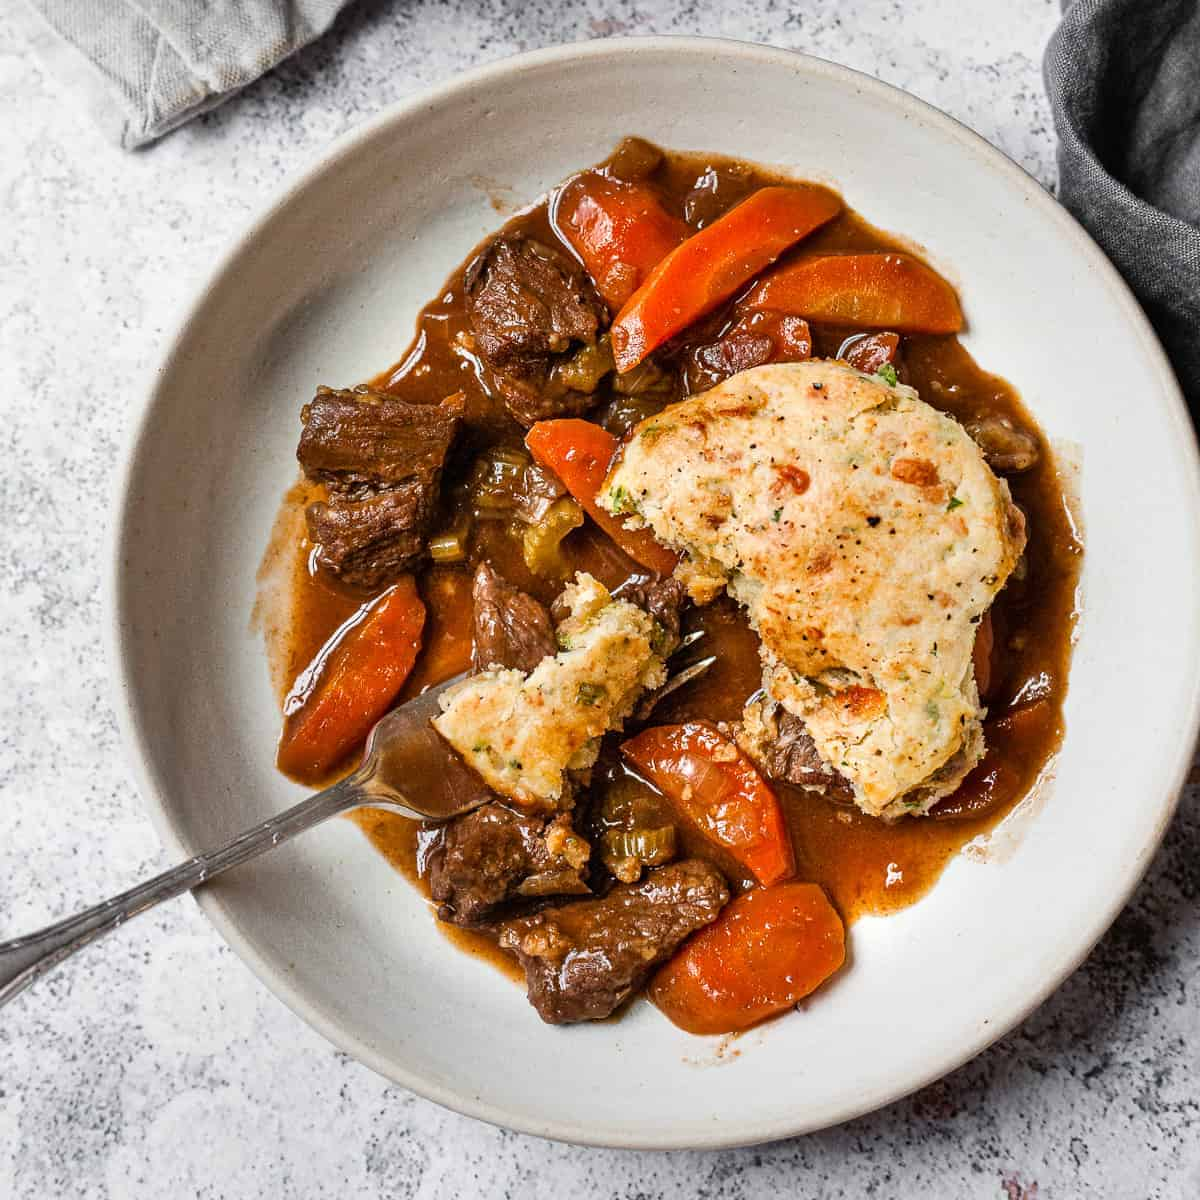 beef cobbler in a bowl with cheese scones.